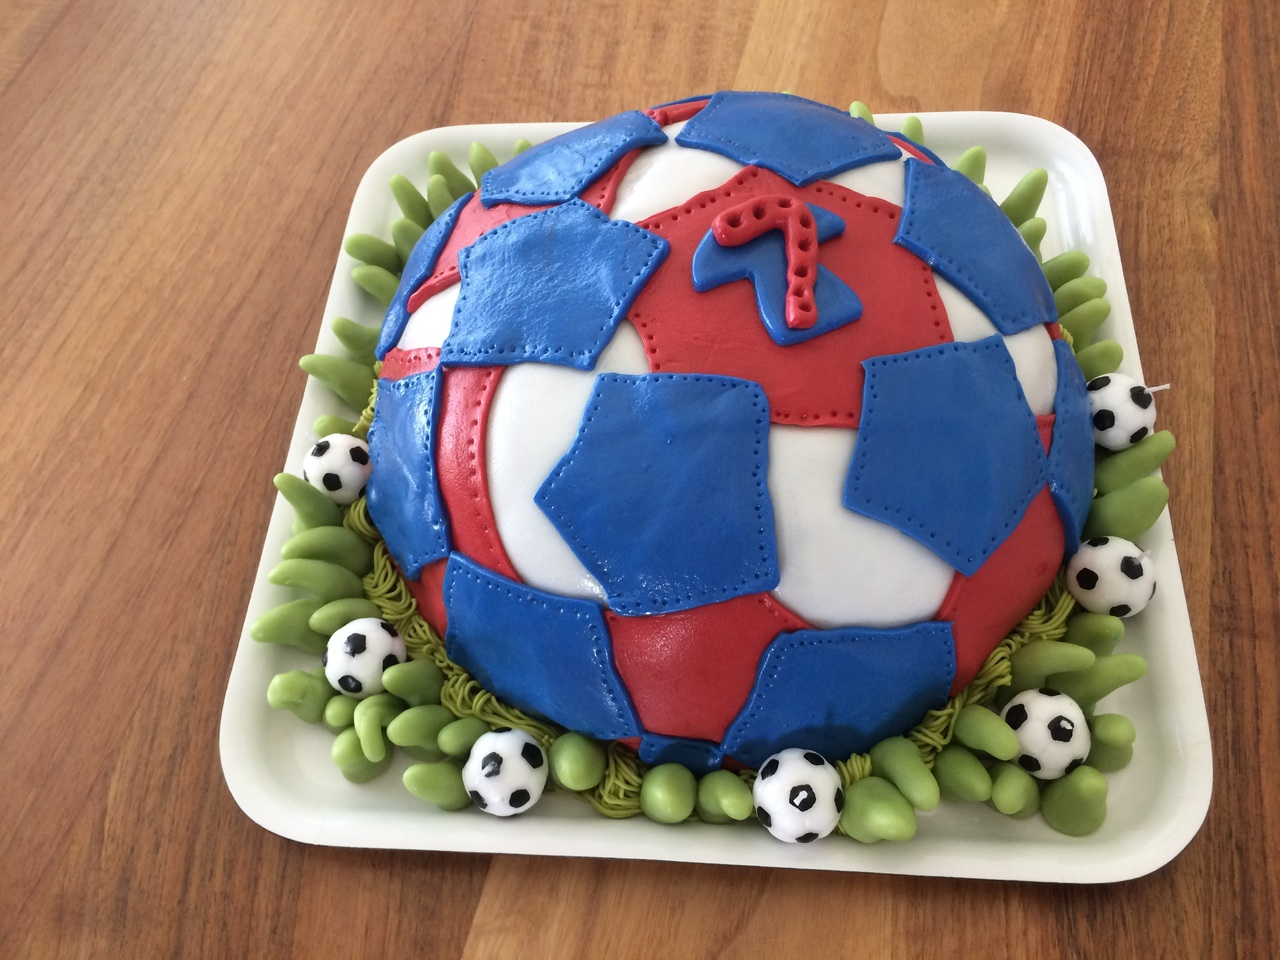 sweet-celebration-food-red-blue-football-684075-pxhere.com